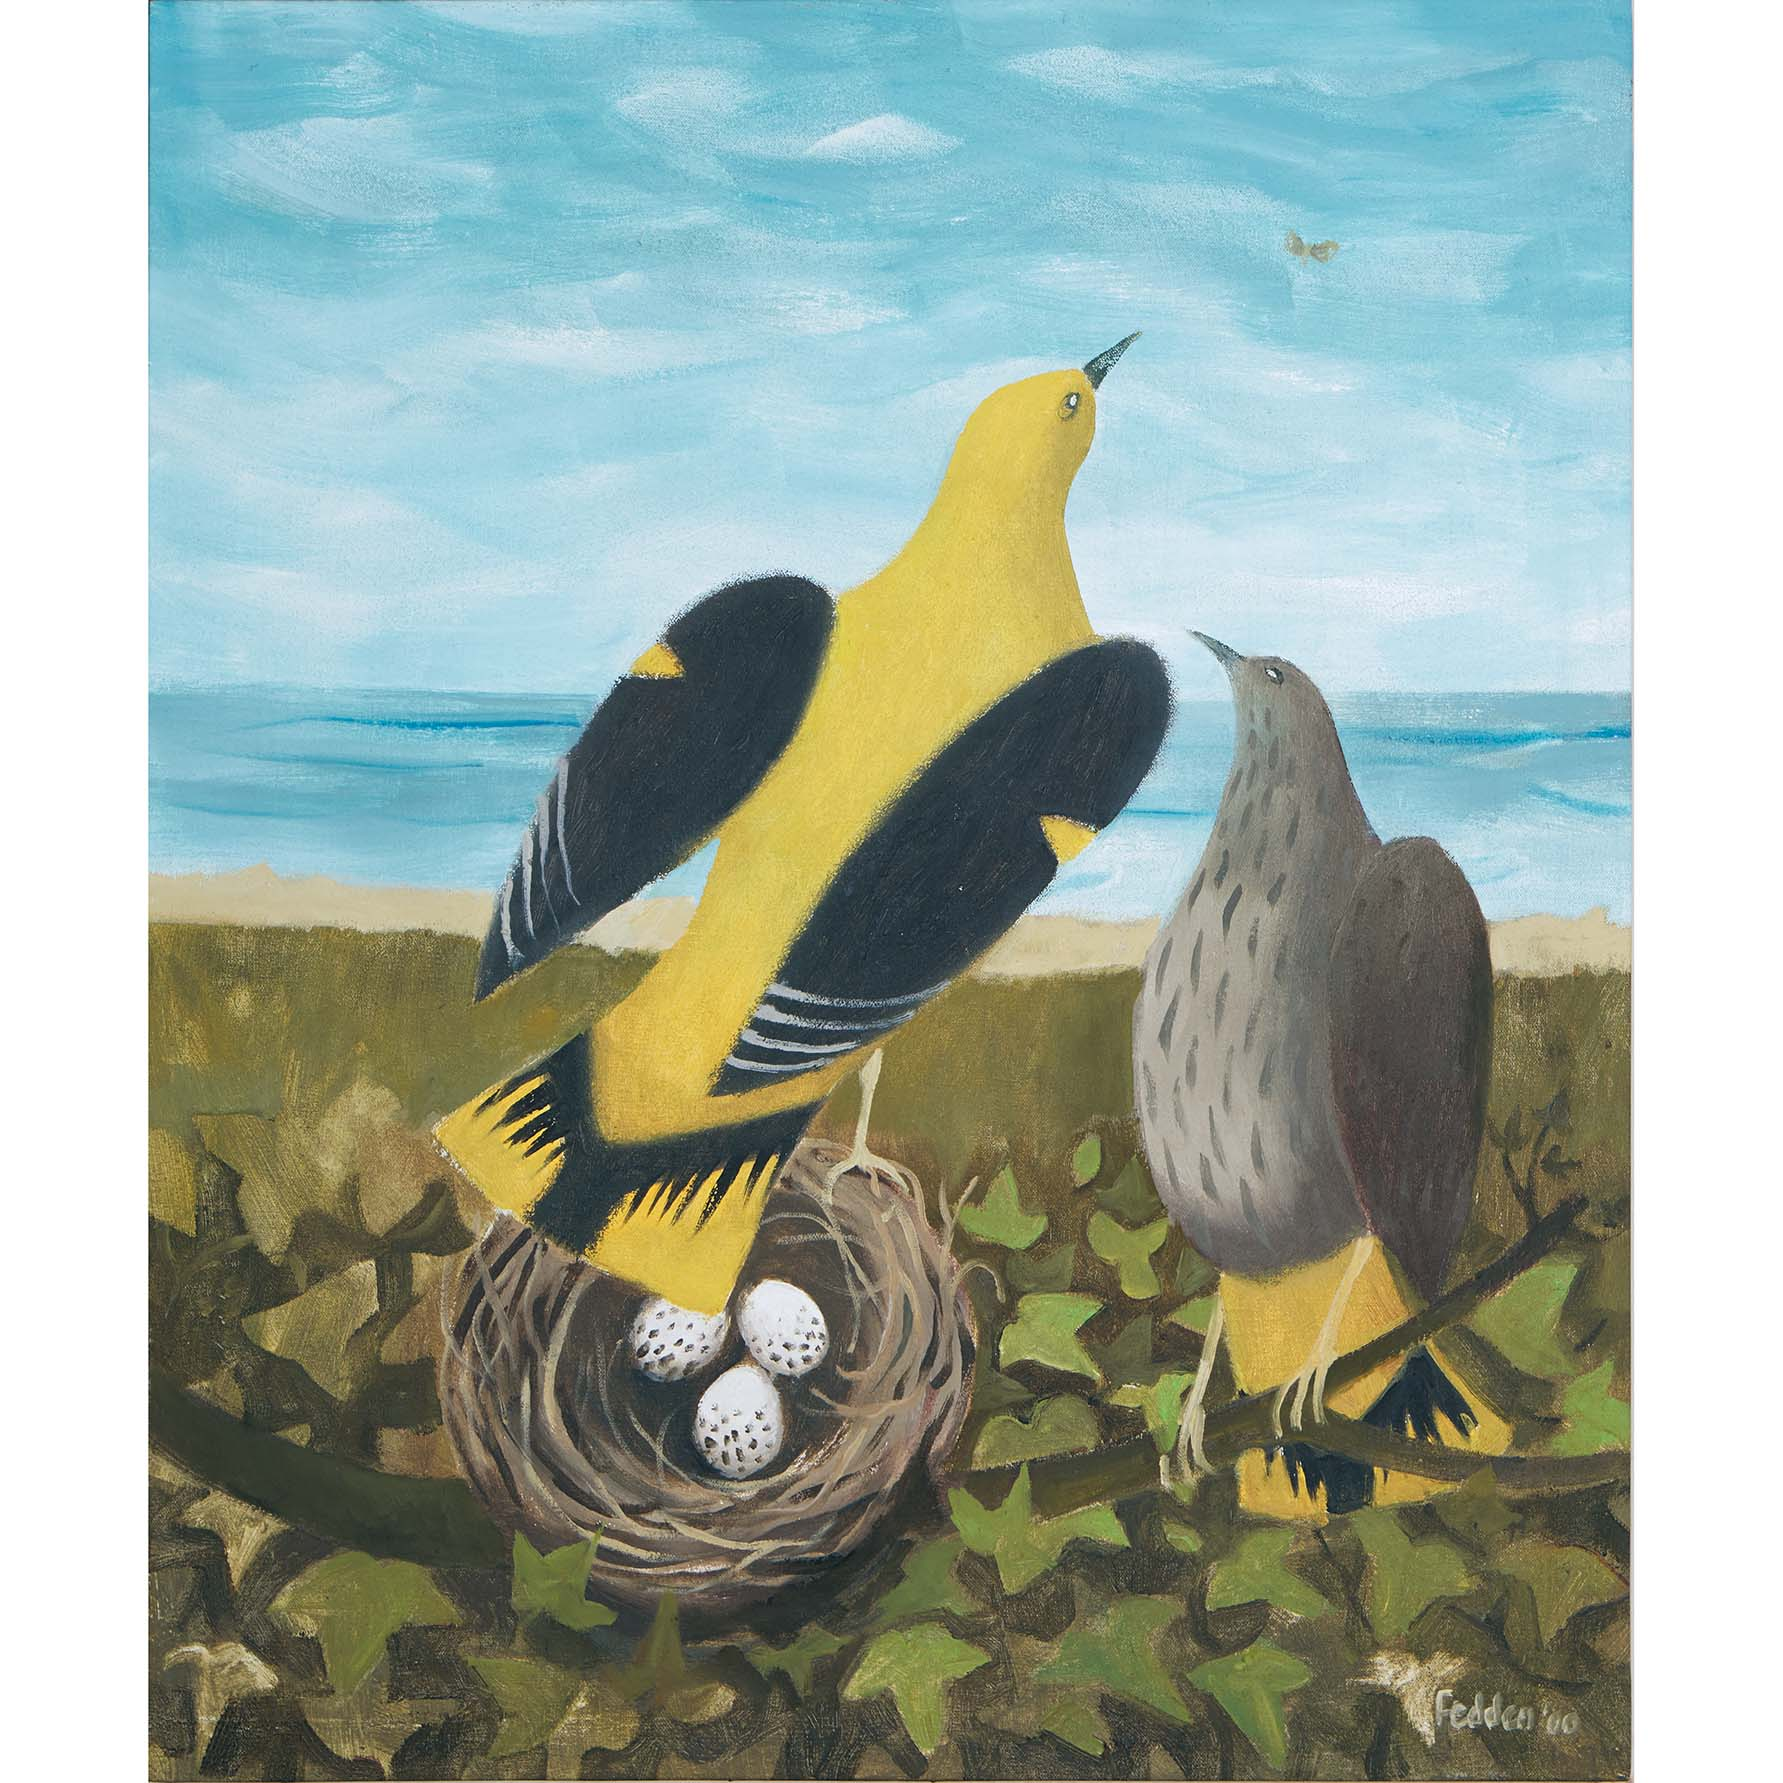 MARY FEDDEN. GOLDEN ORIOLES. 2000